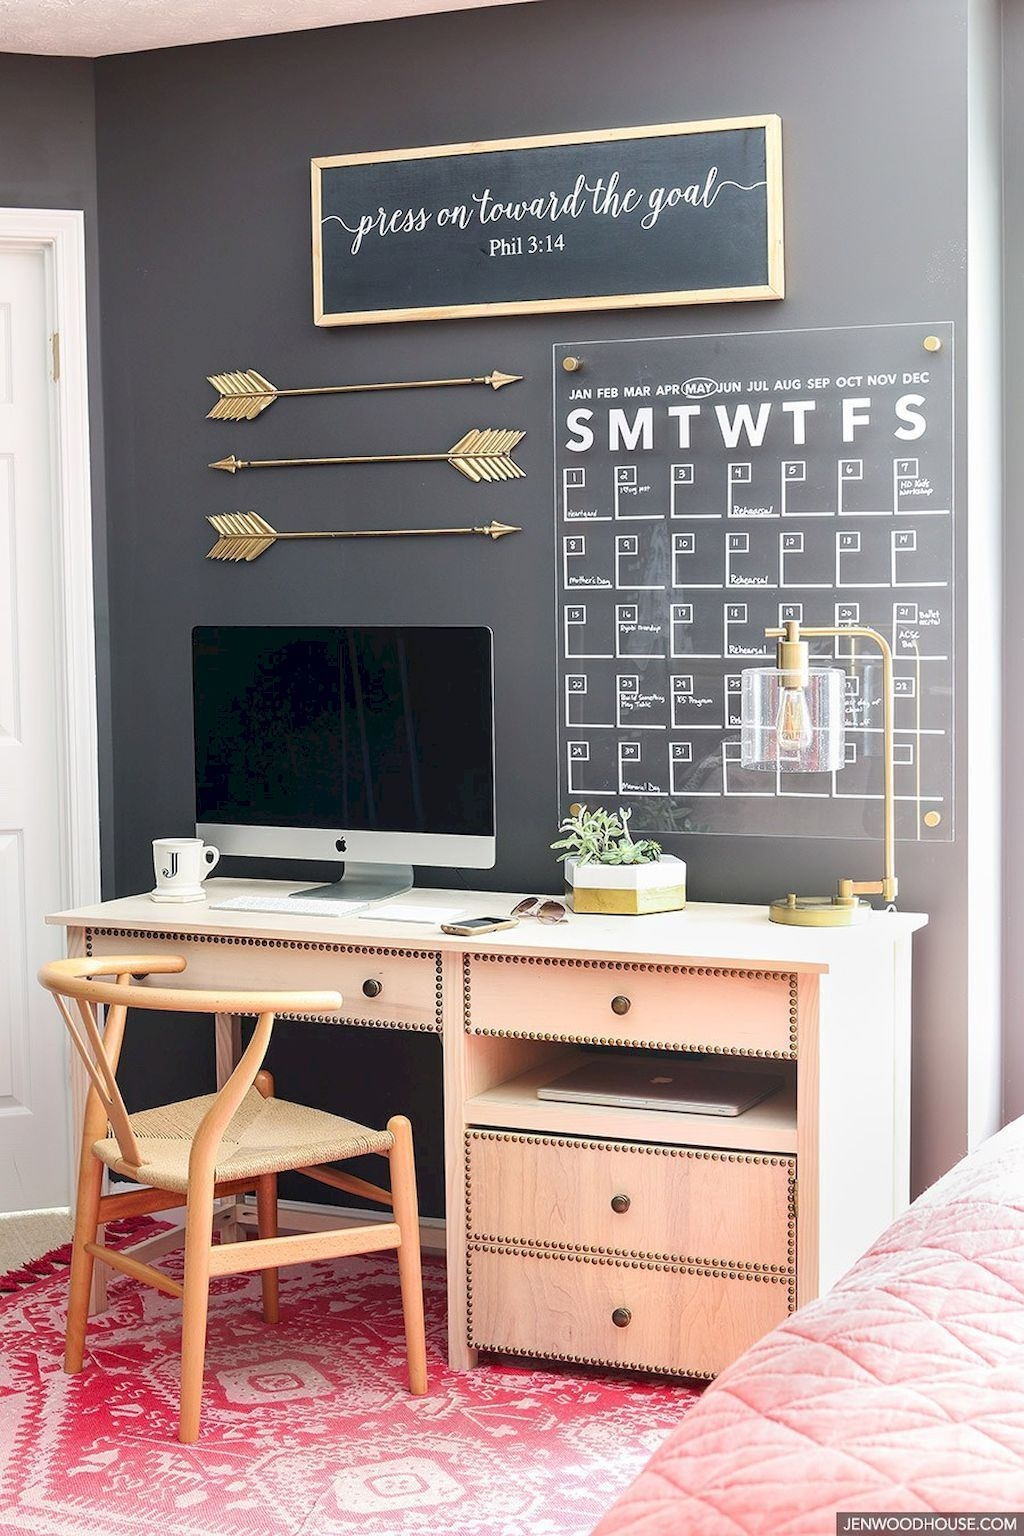 Easy Diy College Apartment Decorating Ideas On A Budget 02